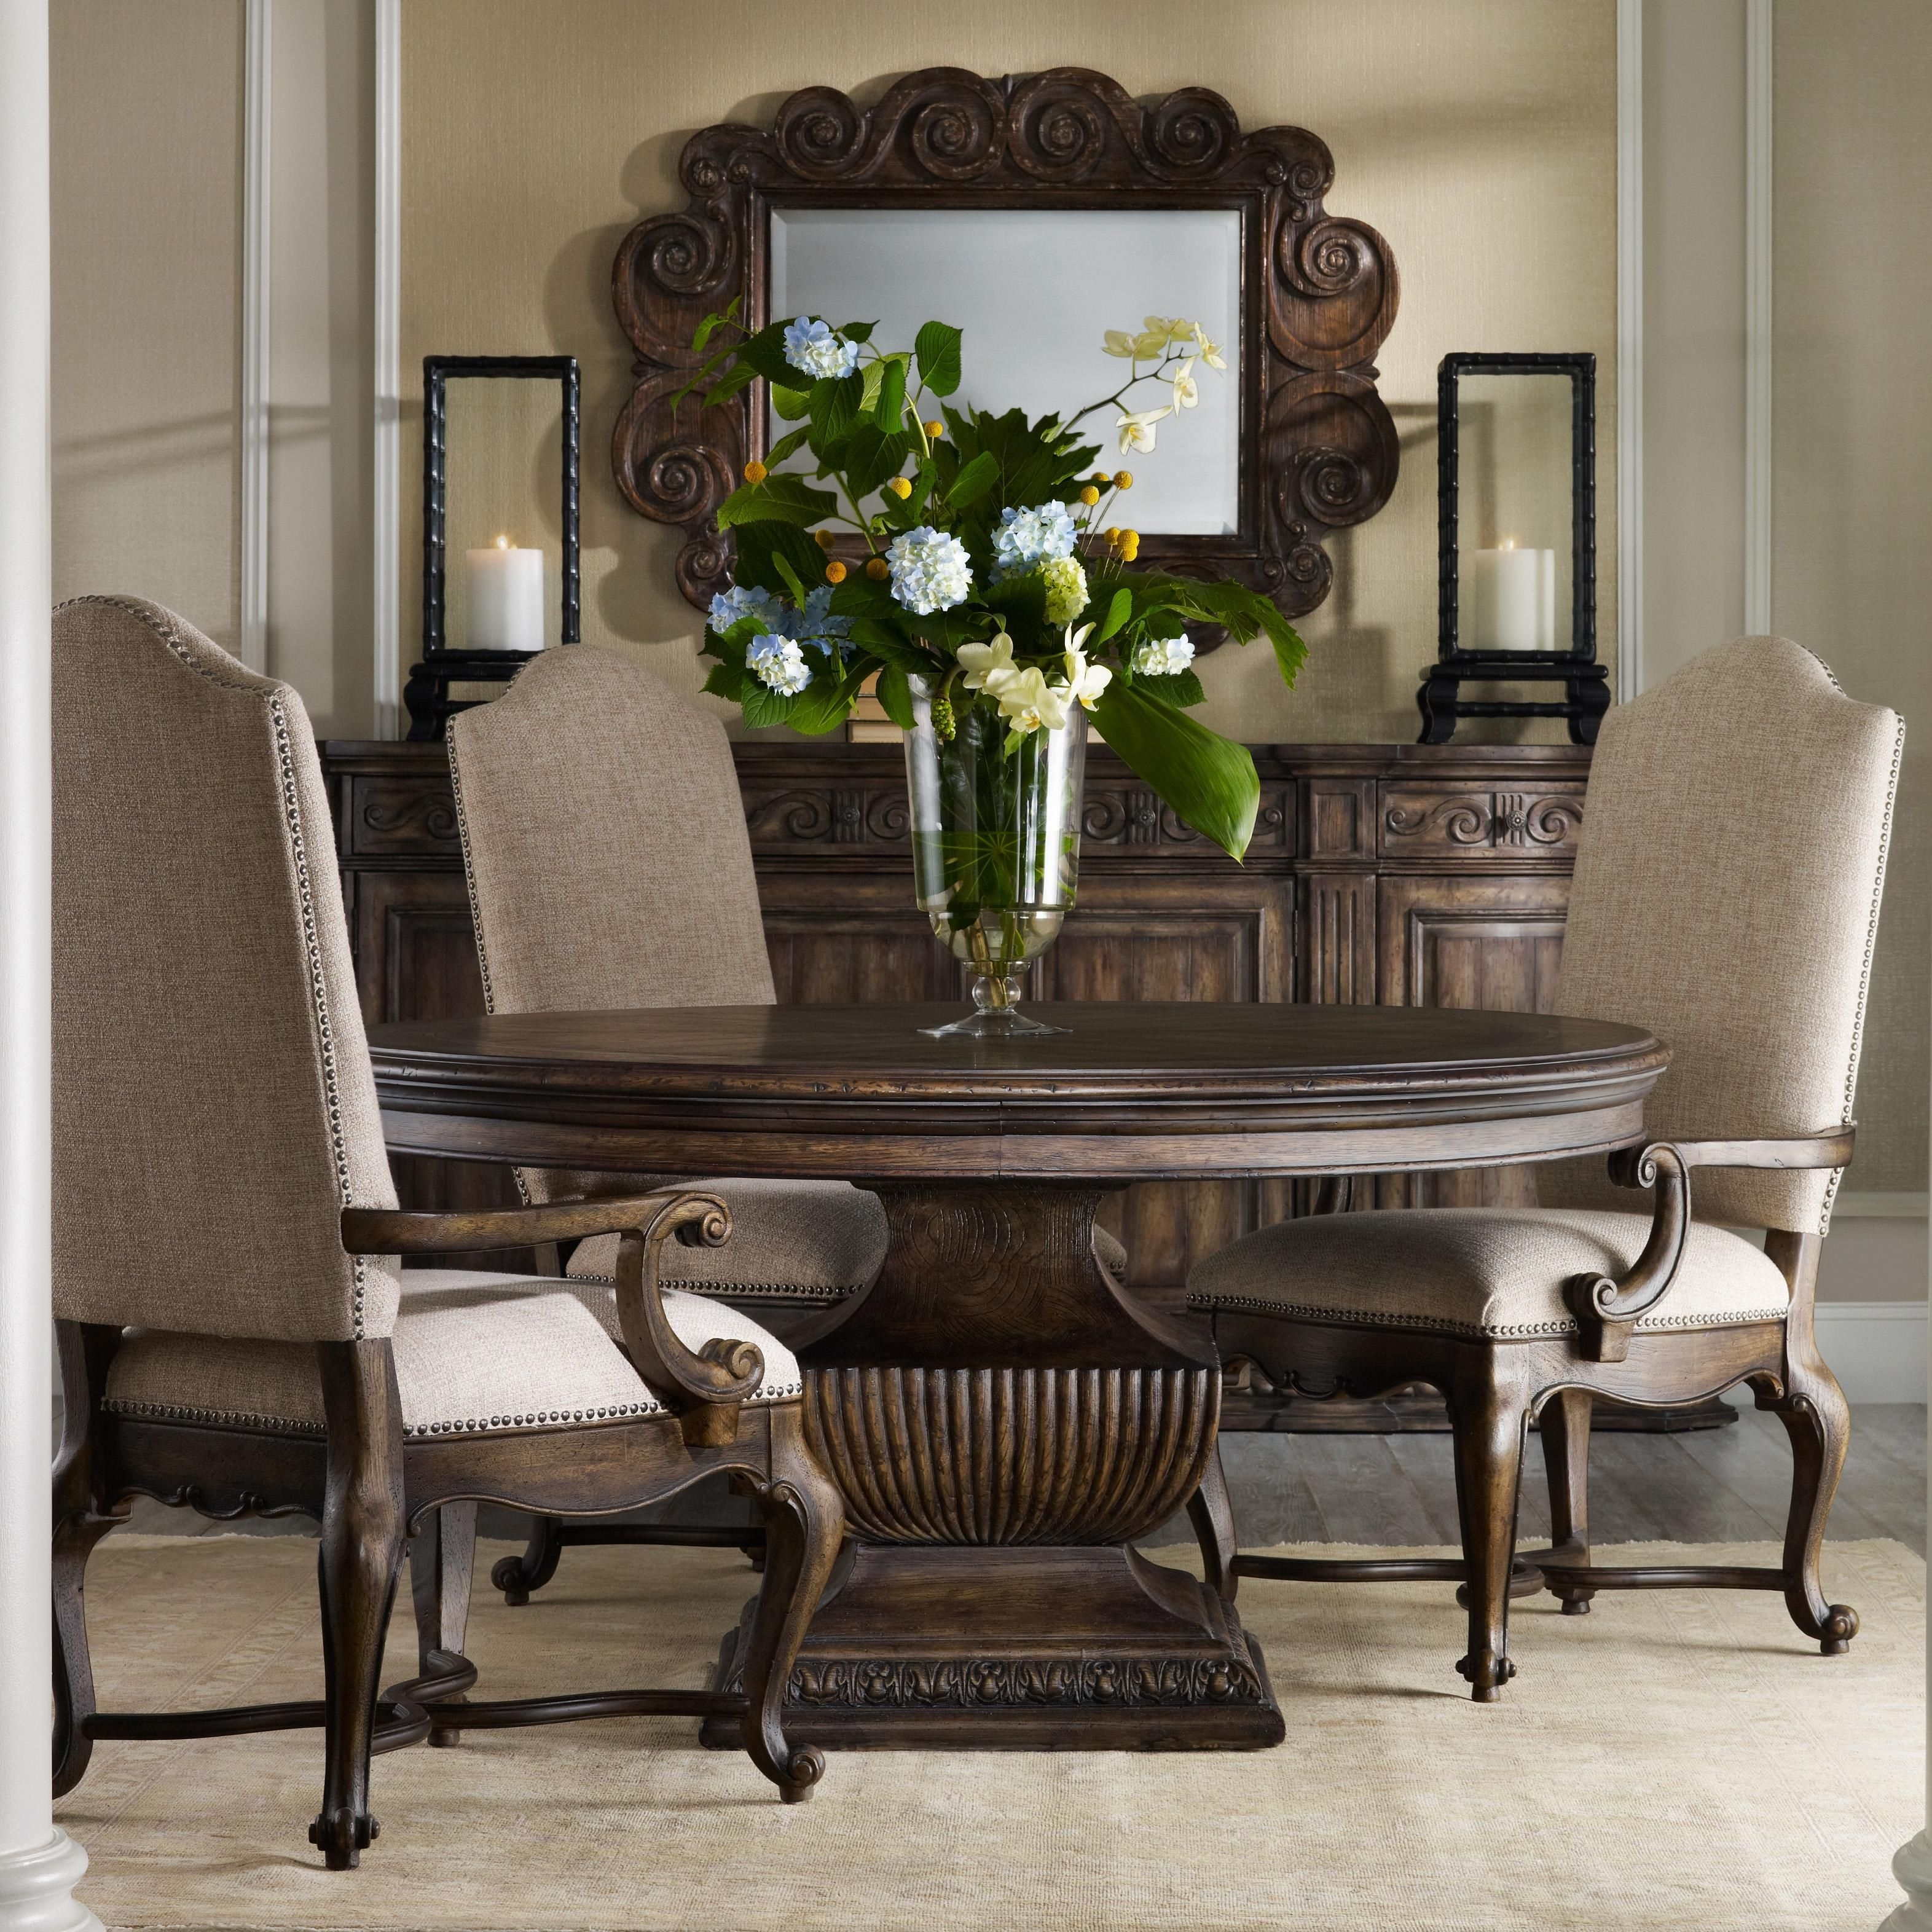 "Hooker Furniture: Rhapsody 60"" Round Pedestal Table And Upholstered Regarding Newest Valencia 60 Inch Round Dining Tables (Image 9 of 20)"